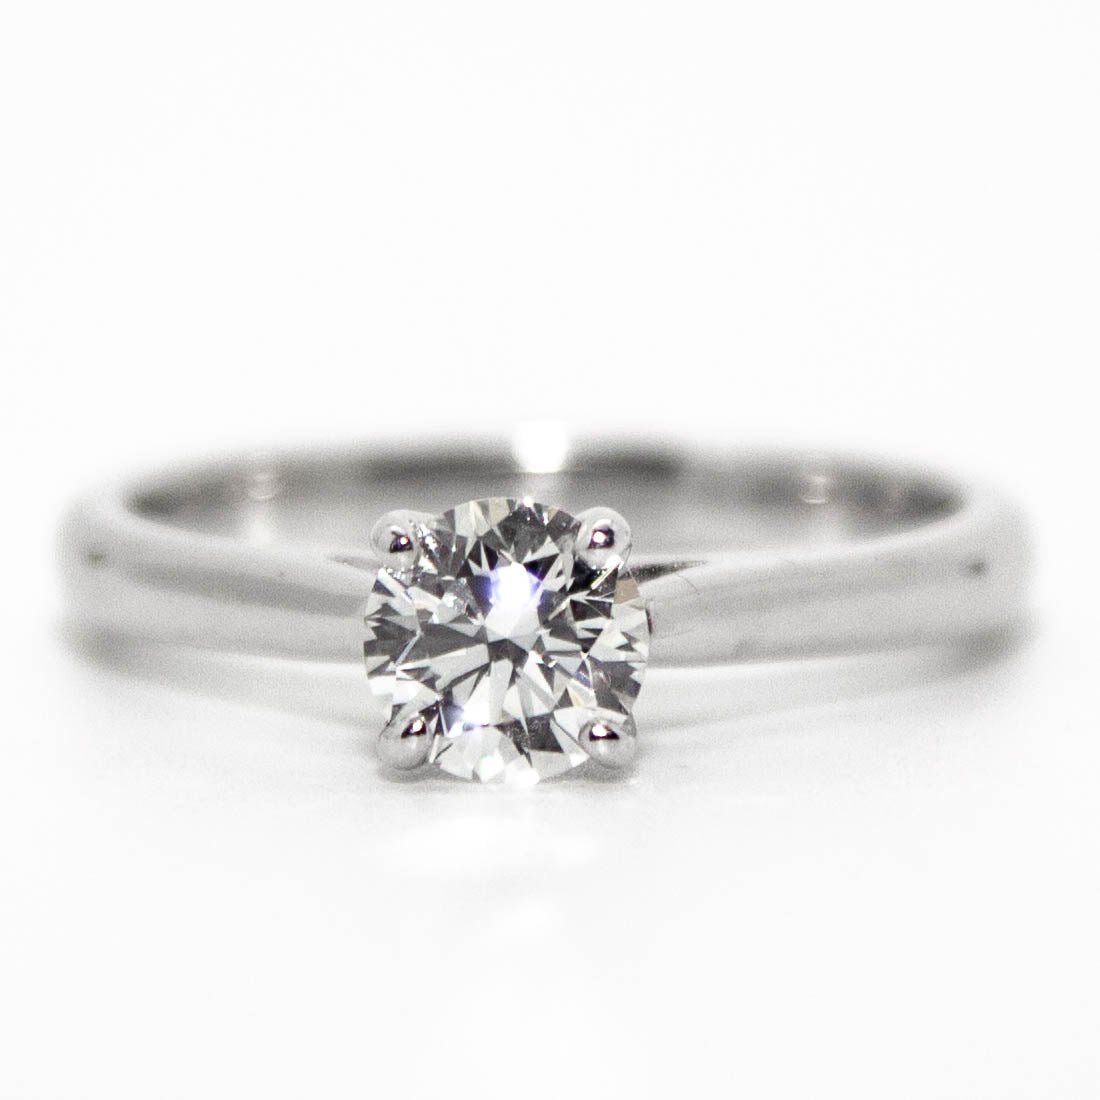 18ct White Gold Brilliant Cut Diamond Solitaire Ring